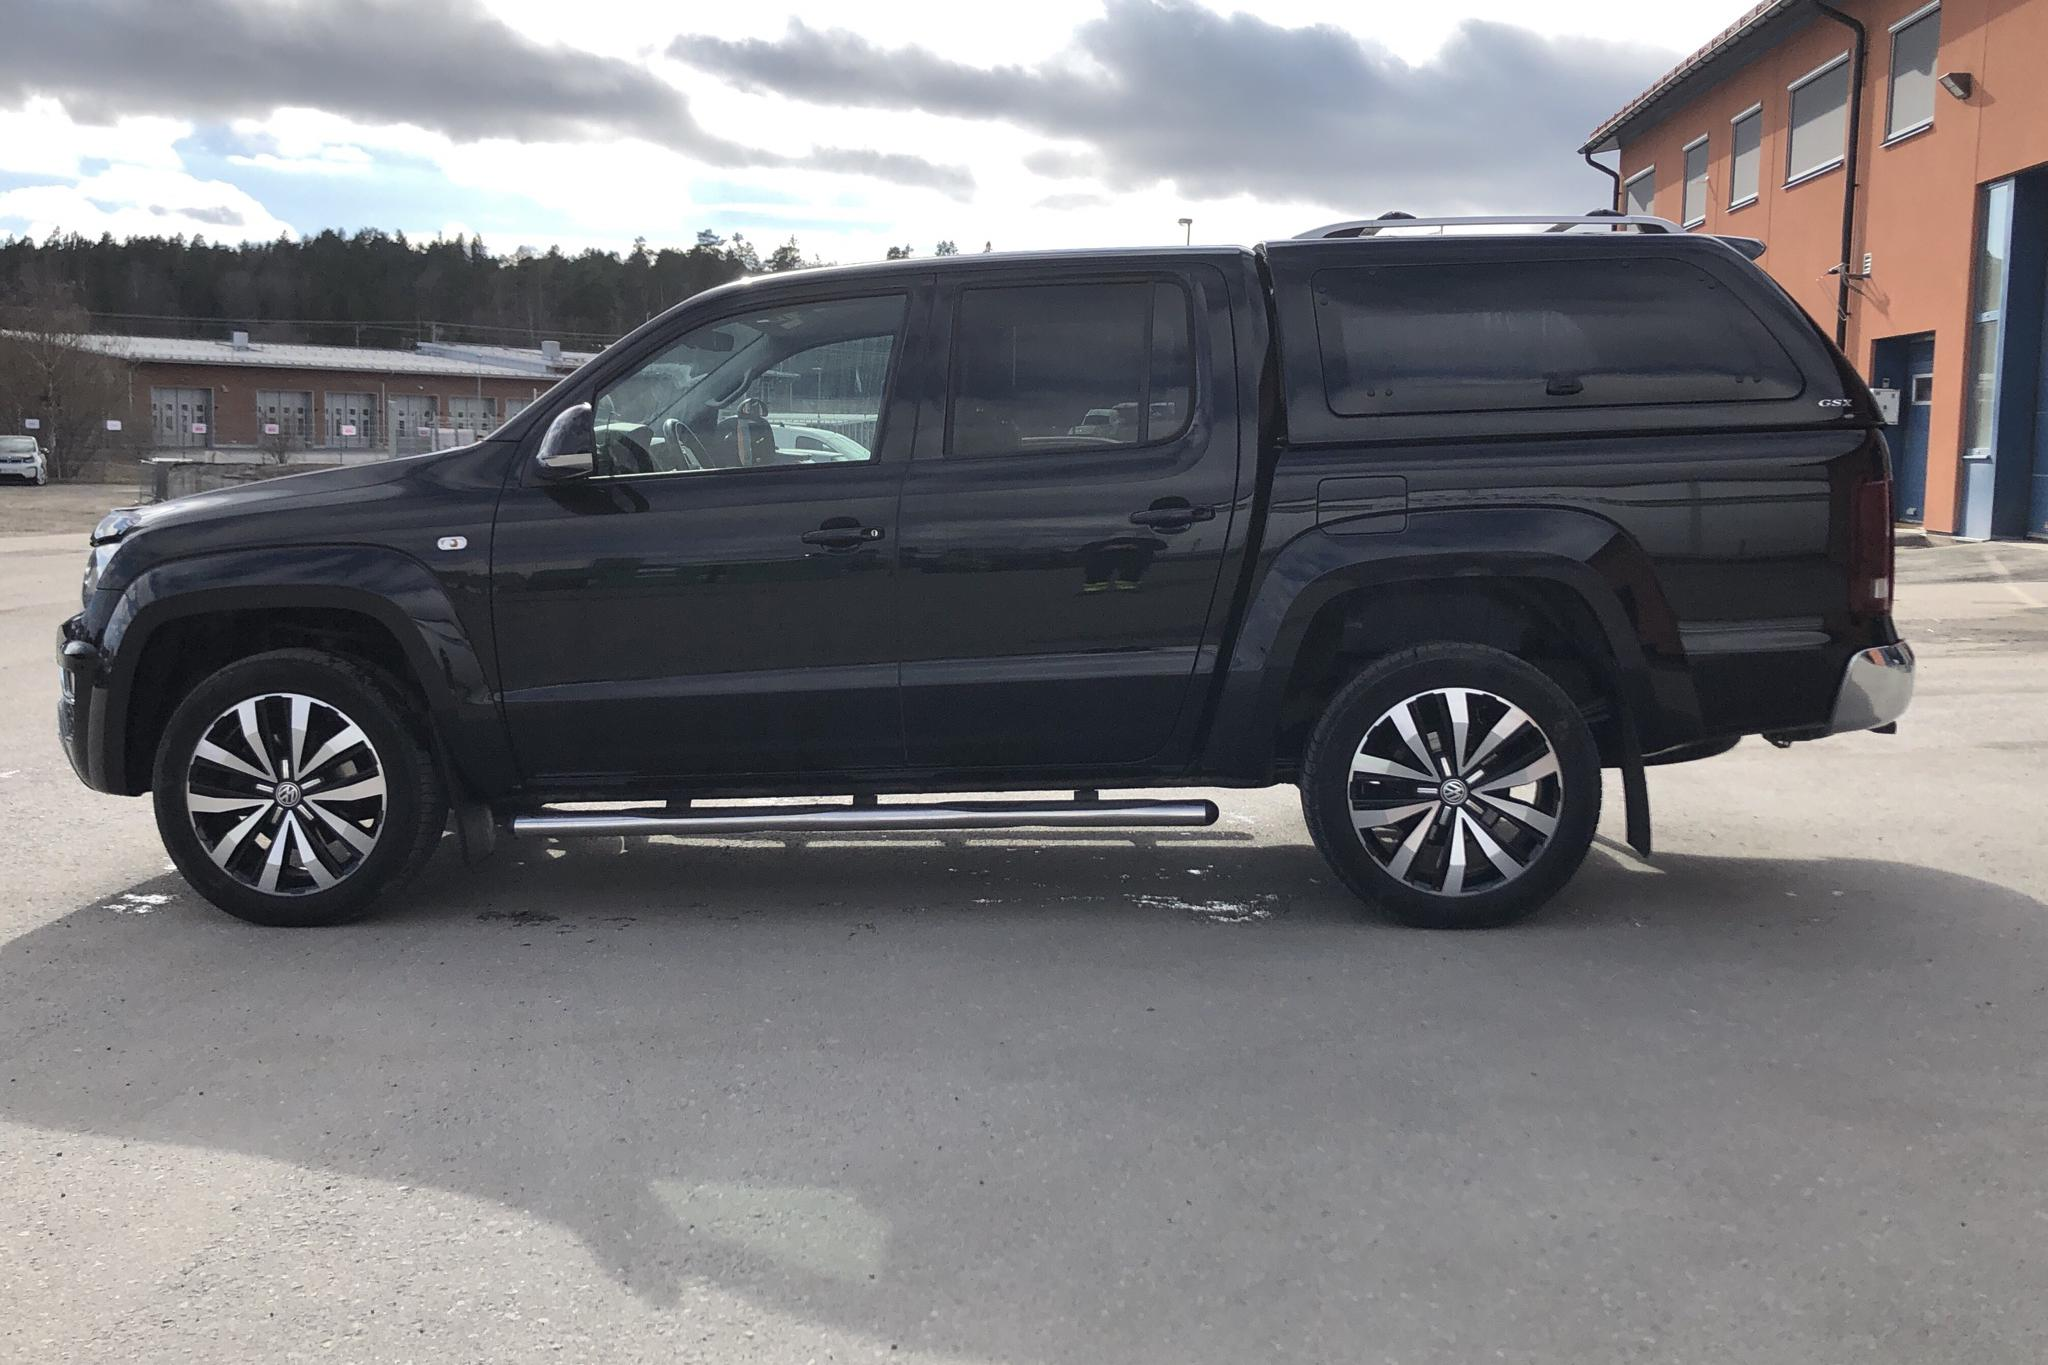 VW Amarok 3.0 TDI 4motion (224hk) - 104 140 km - Automatic - black - 2018